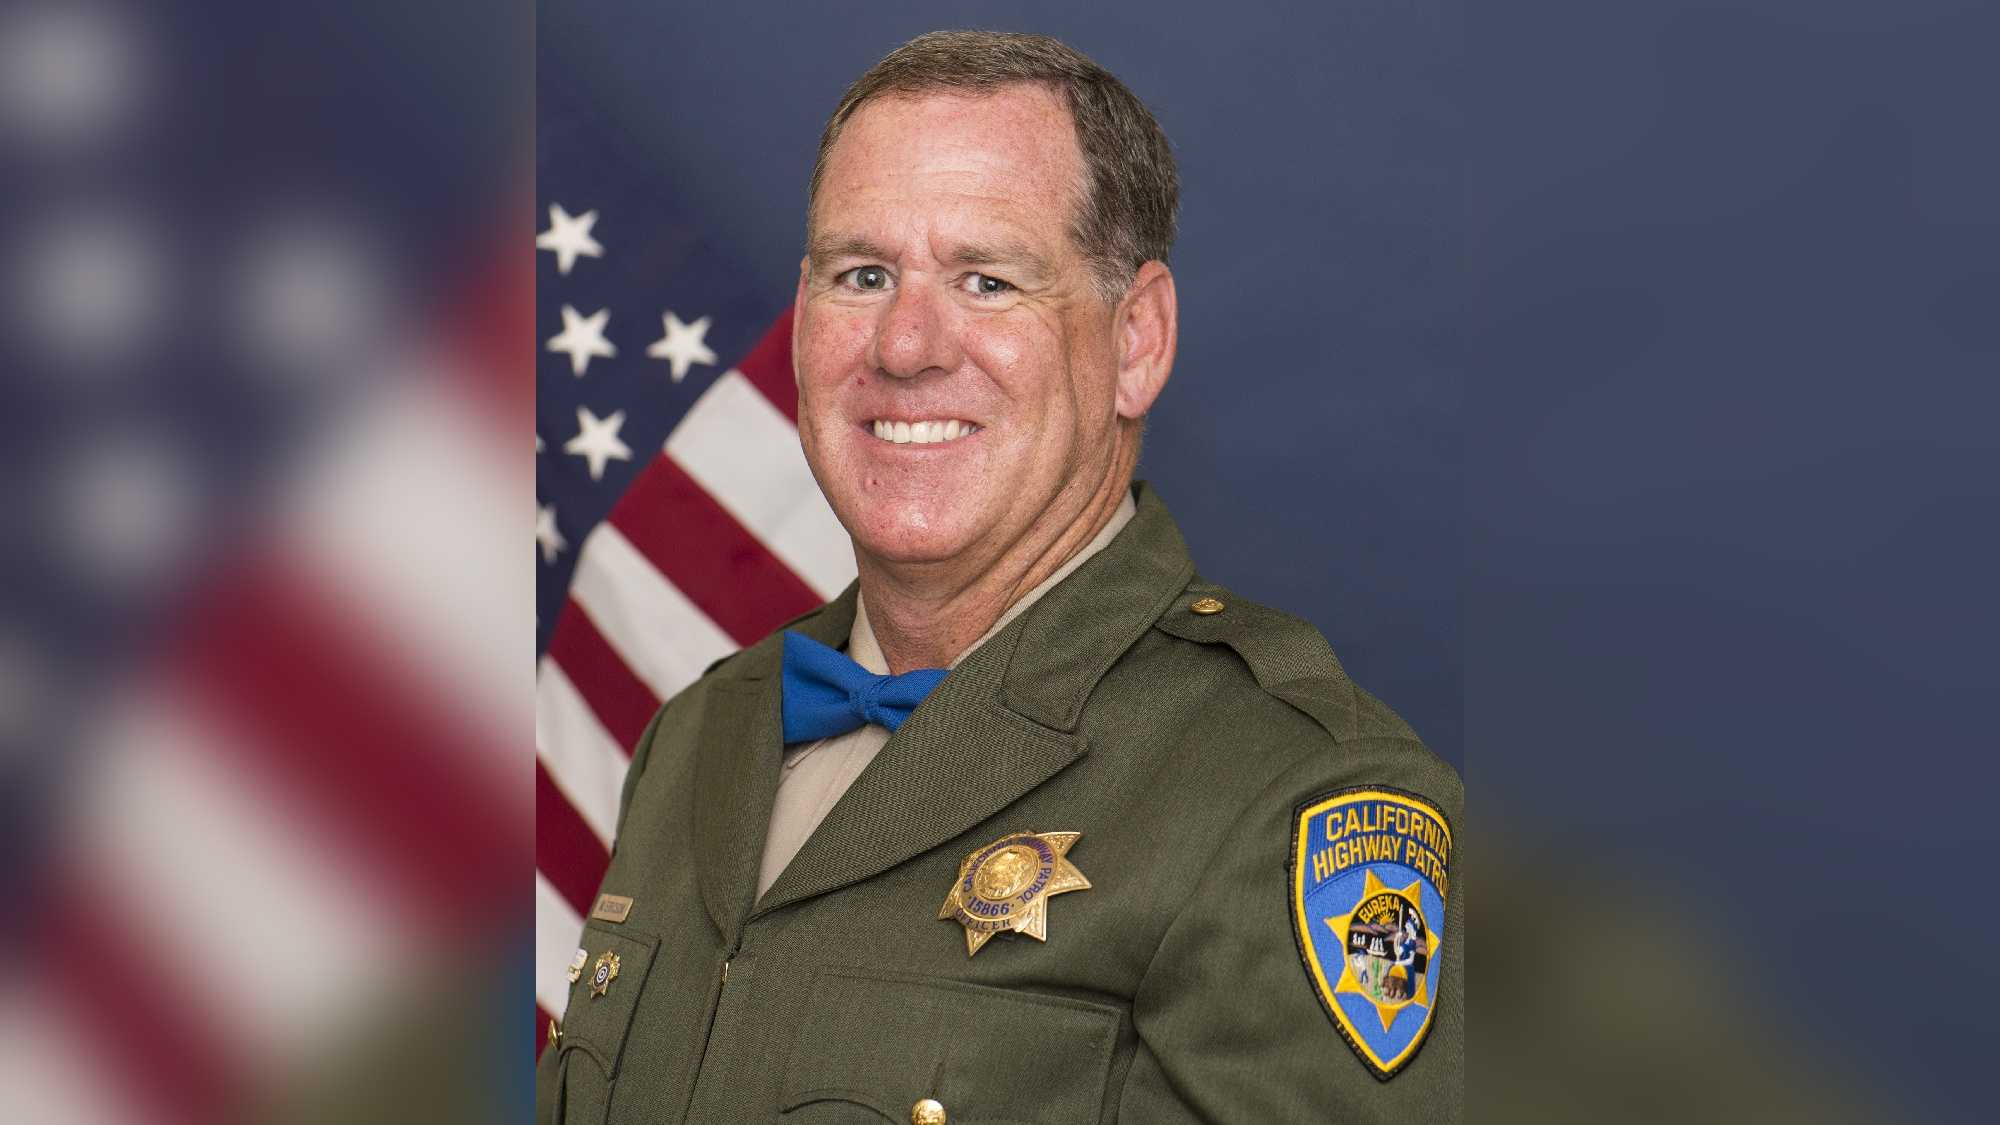 CHP Officer Michael Ericson